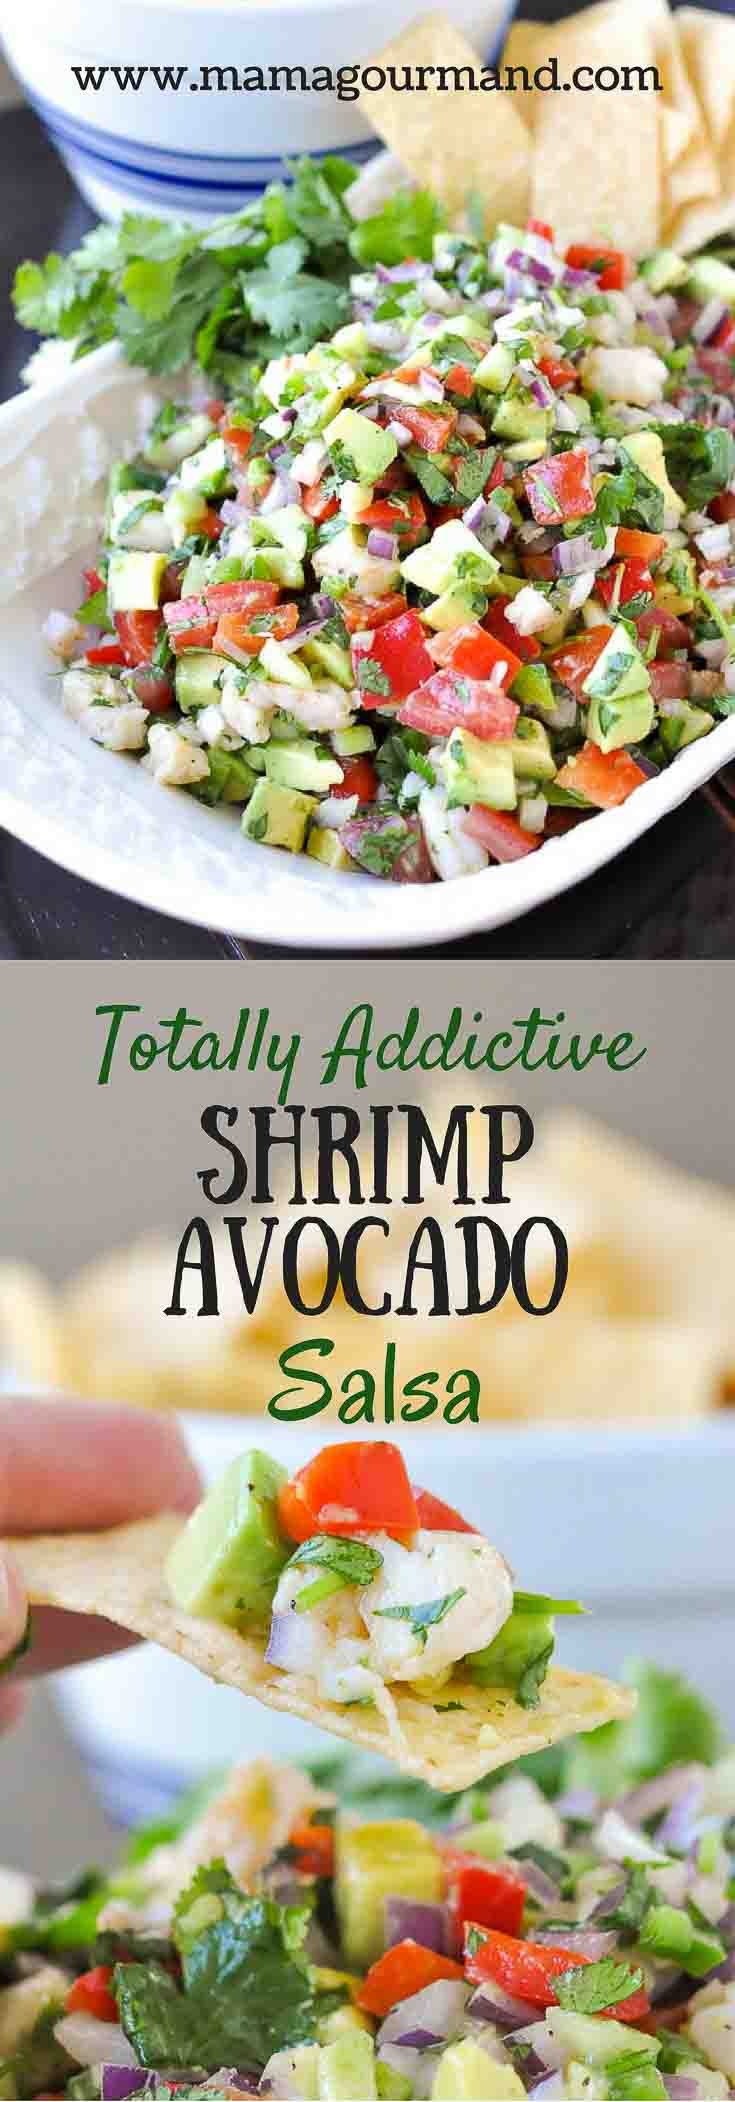 Totally Addictive Shrimp Avocado Salsa uses fresh garden ingredients and easily tosses together to make one surprisingly flavorful and addictive appetizer. https://www.mamagourmand.com